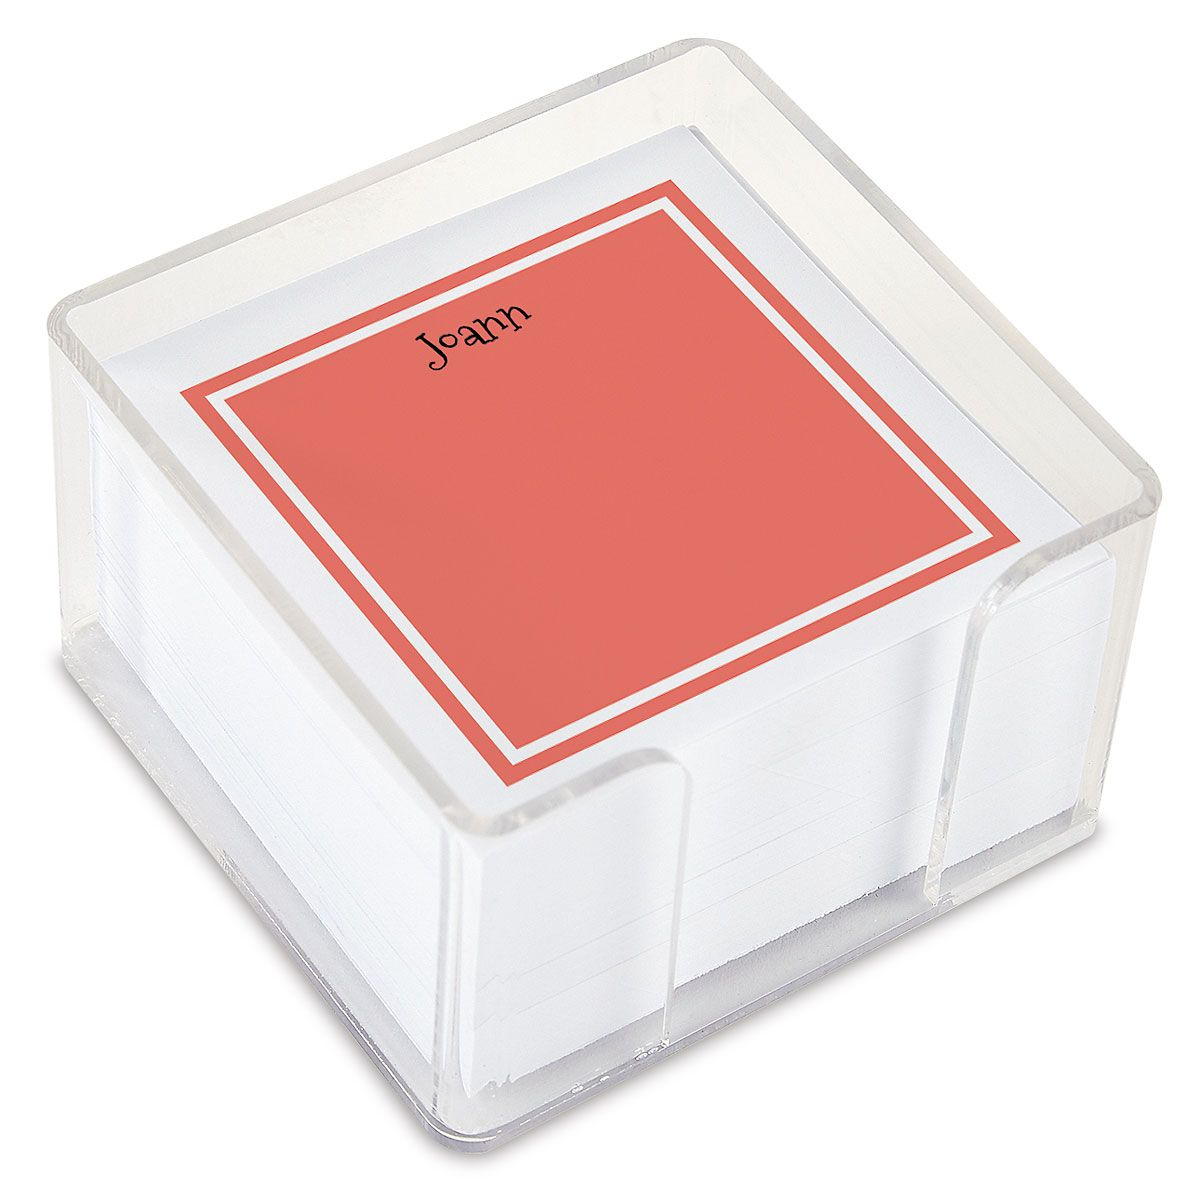 Color Trend Personalized Note Sheets in a Cube (4 rotating colors)